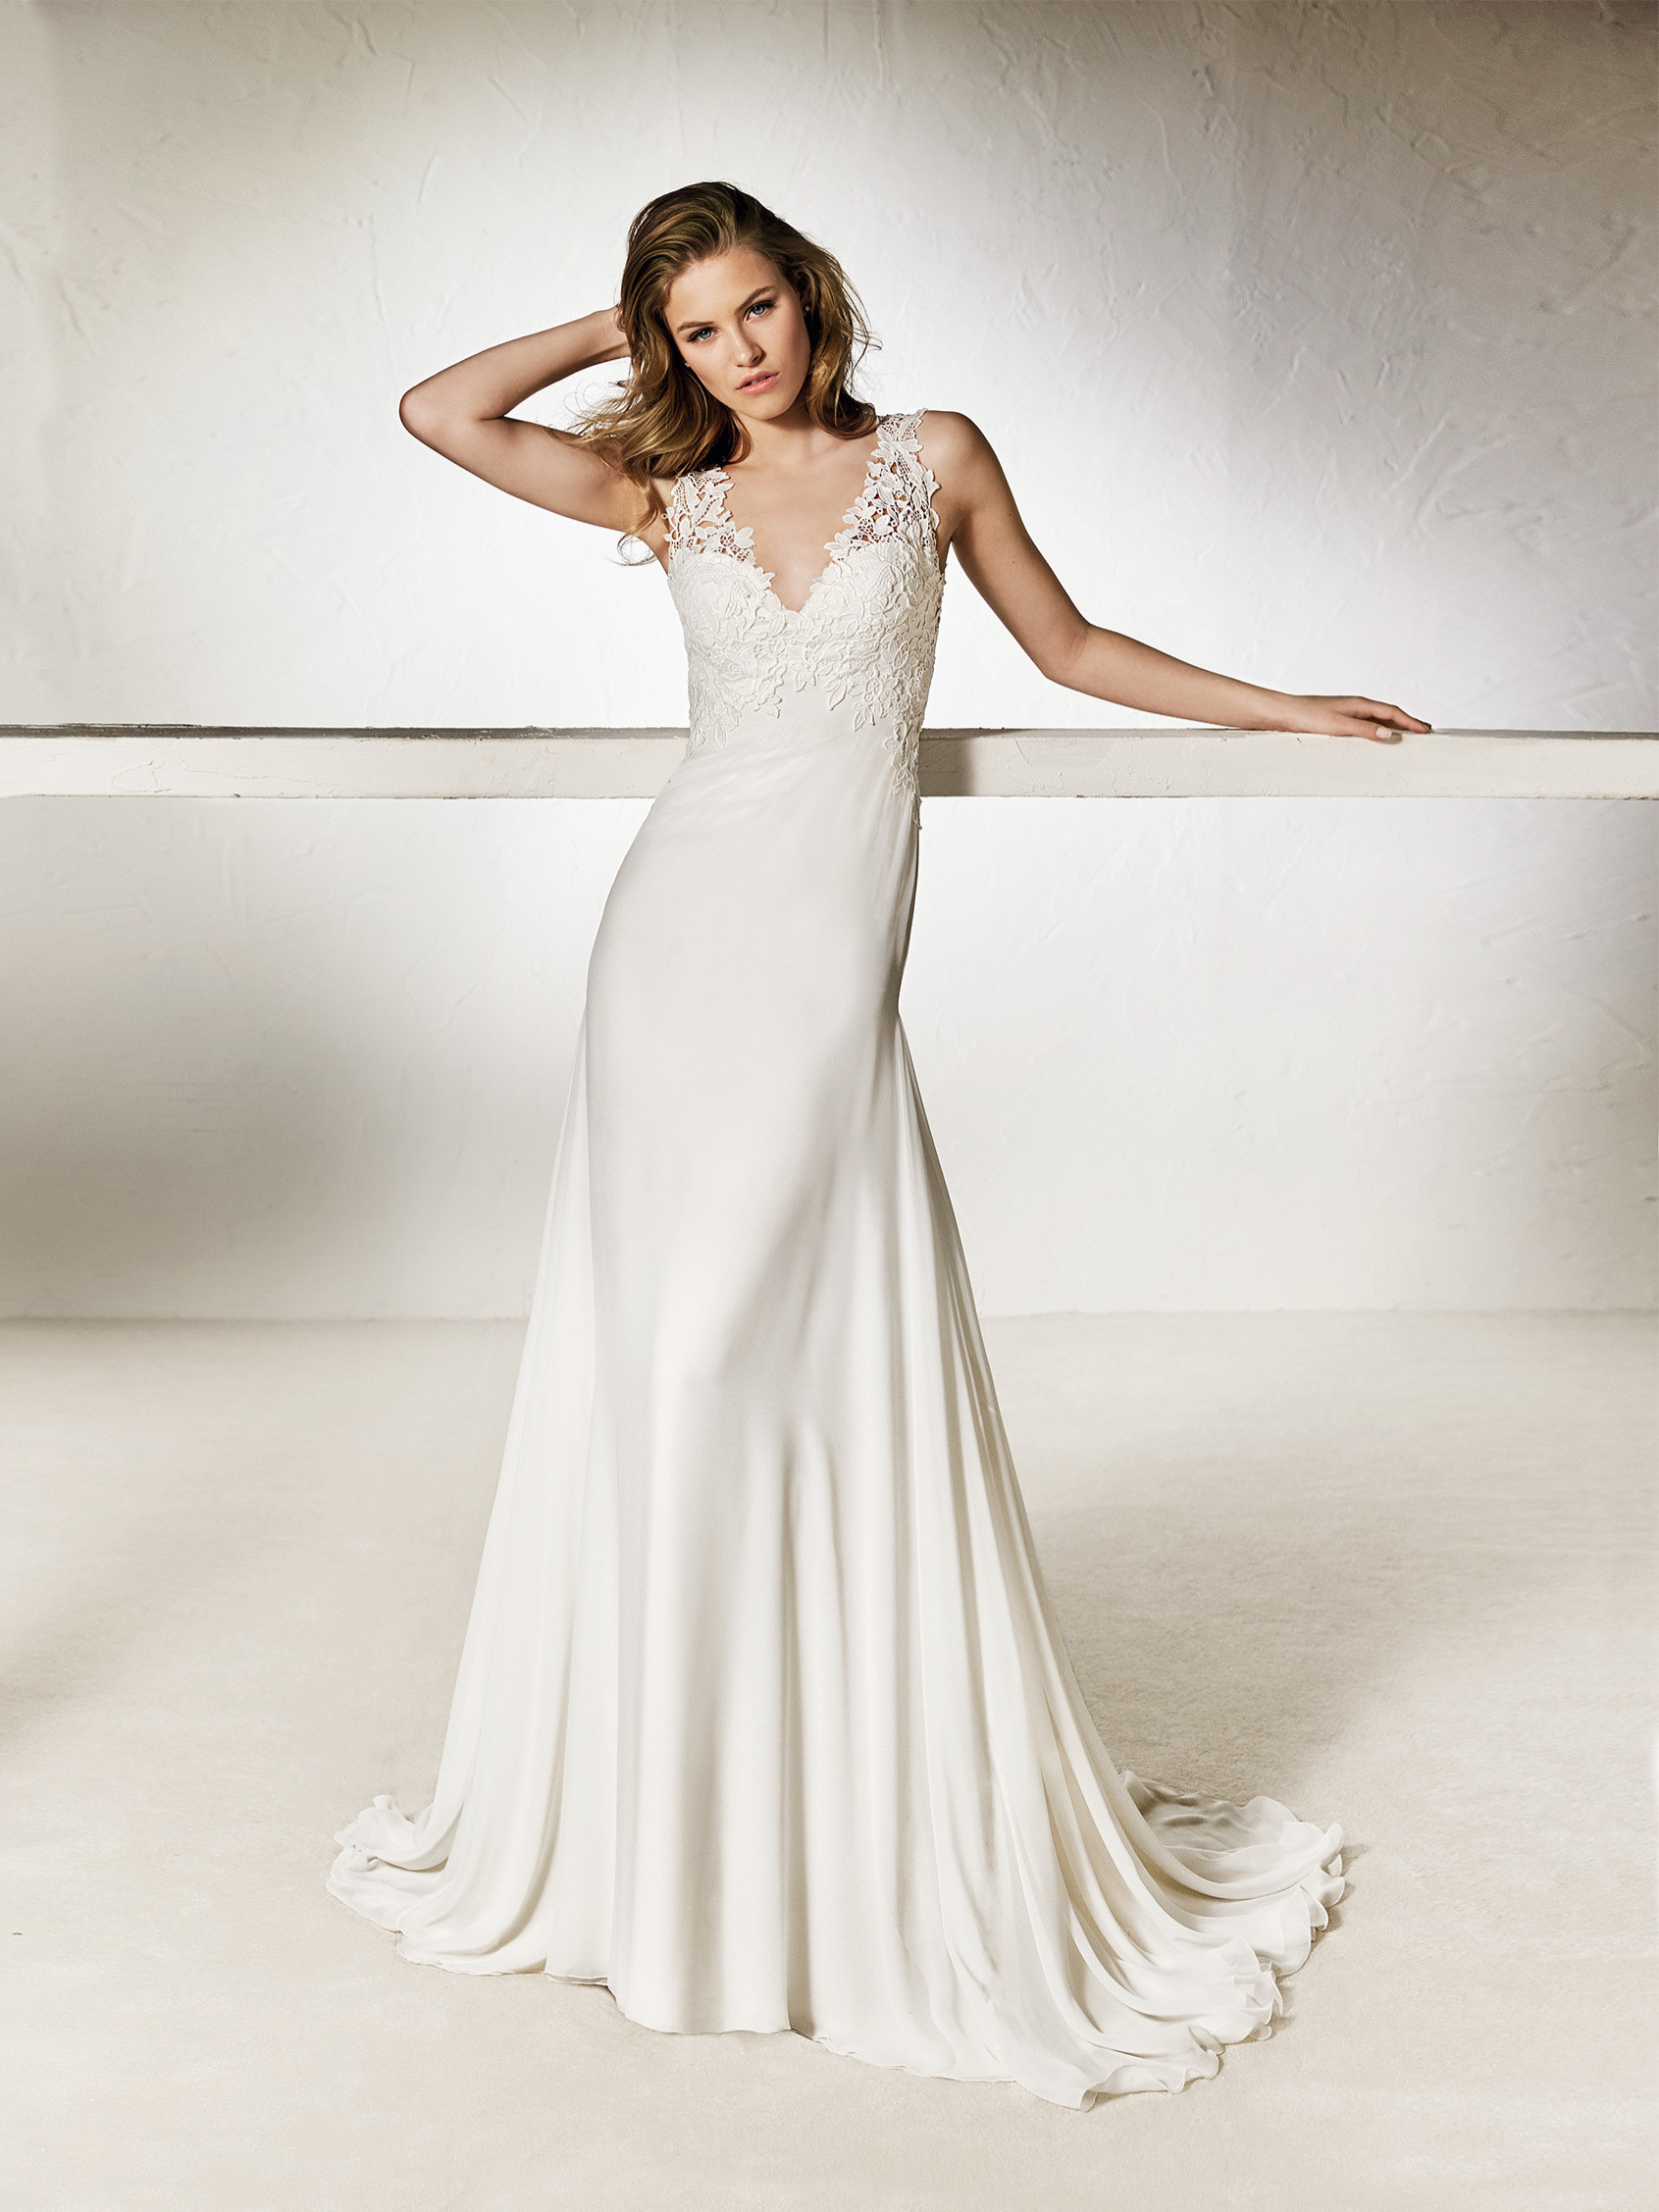 Chalice Flared Wedding Dress With A Double Neckline In